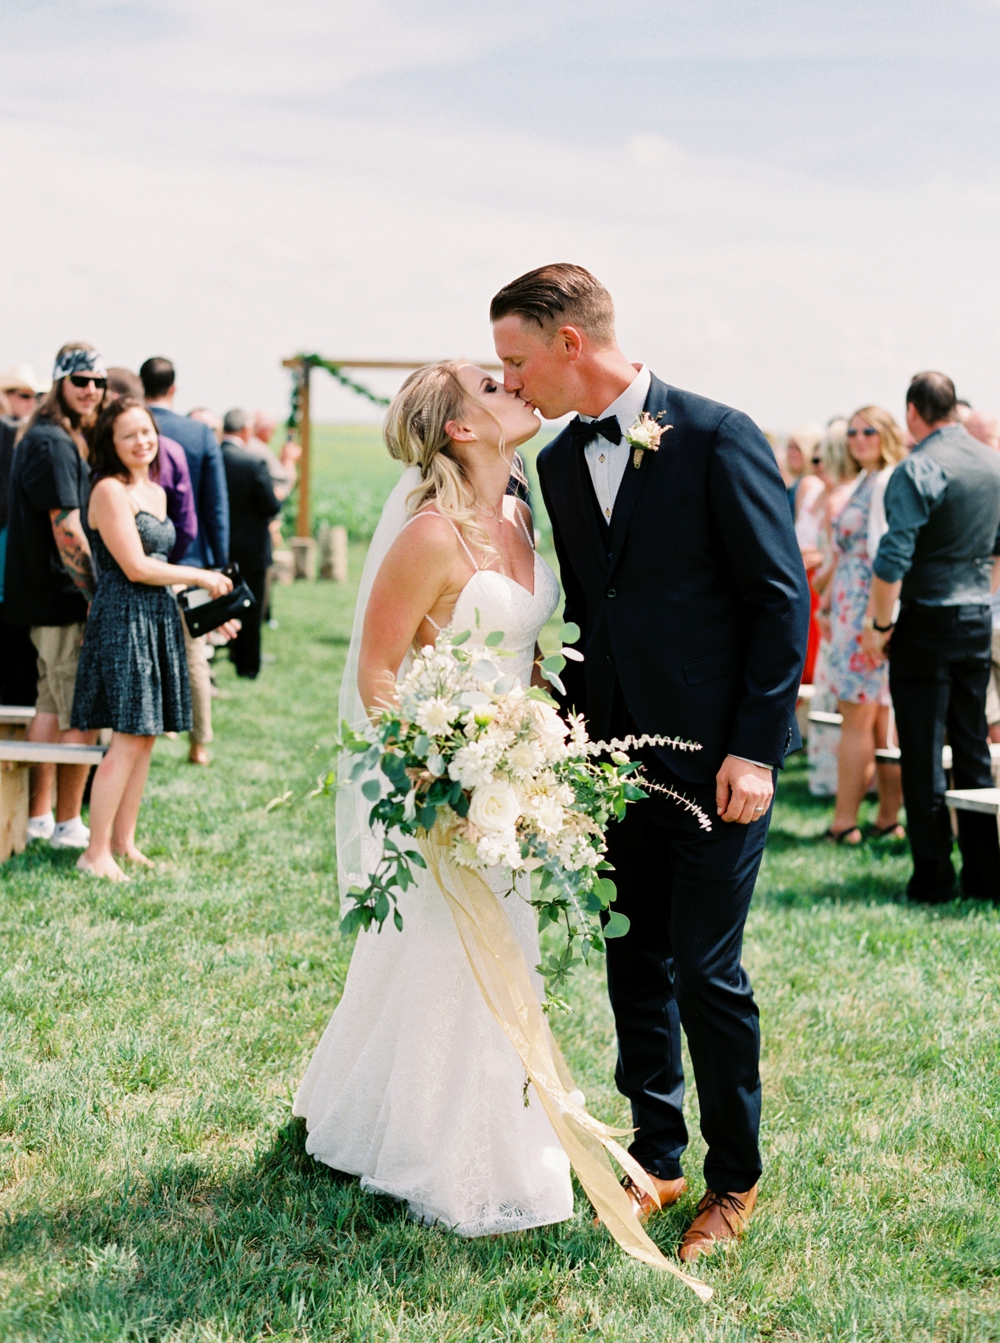 Calgary Wedding Photographers | Willow Lane Barn Olds Wedding | Alberta Wedding Photography | Outdoor Wedding Ceremony | Rustic Wedding | Fine Art Film Photographer | Neutral Color Palette